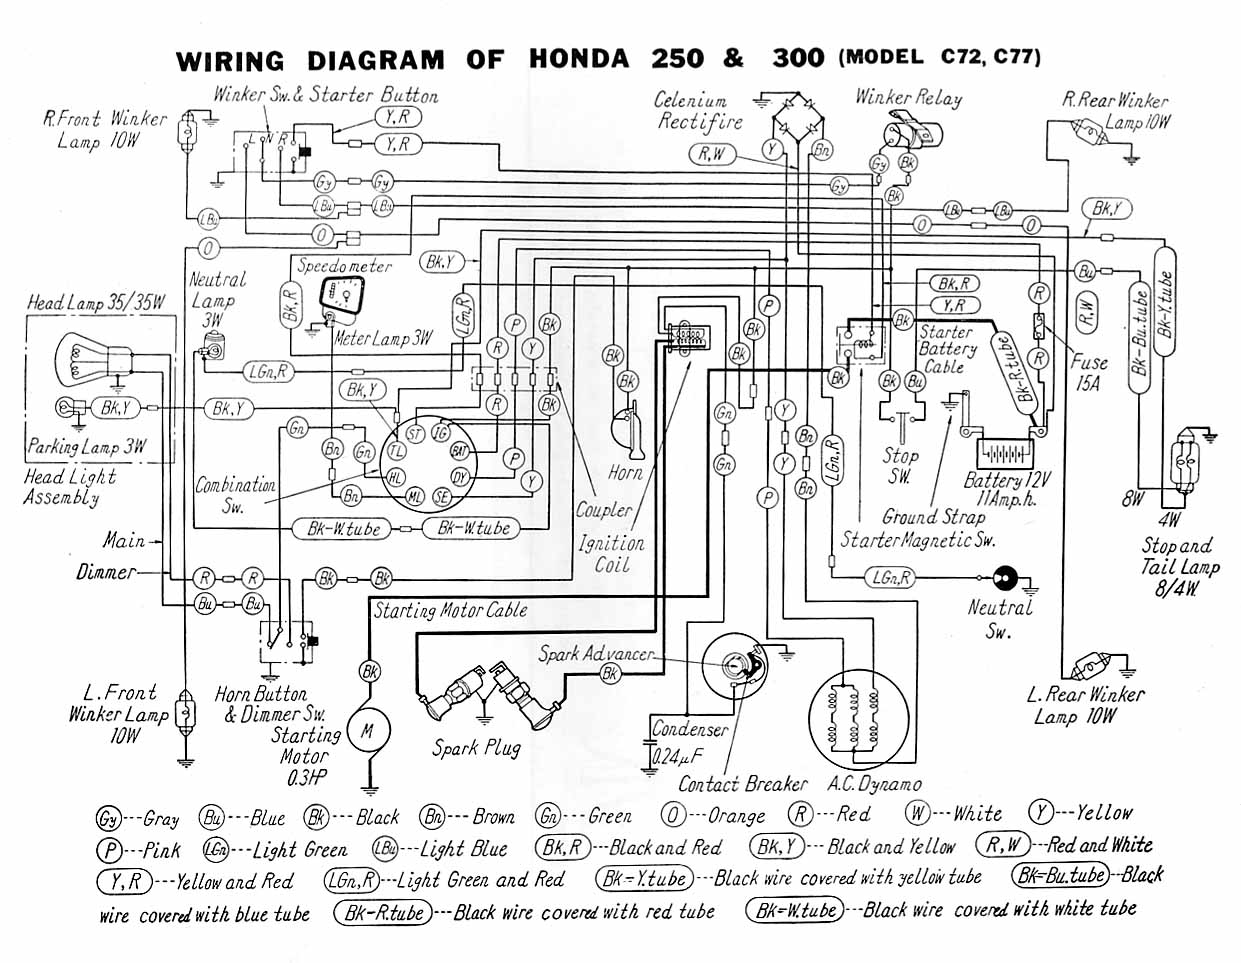 wiring diagrams rh oregonmotorcycleparts com Motor Stator Winding Diagram Yamaha Warrior Stator Diagram